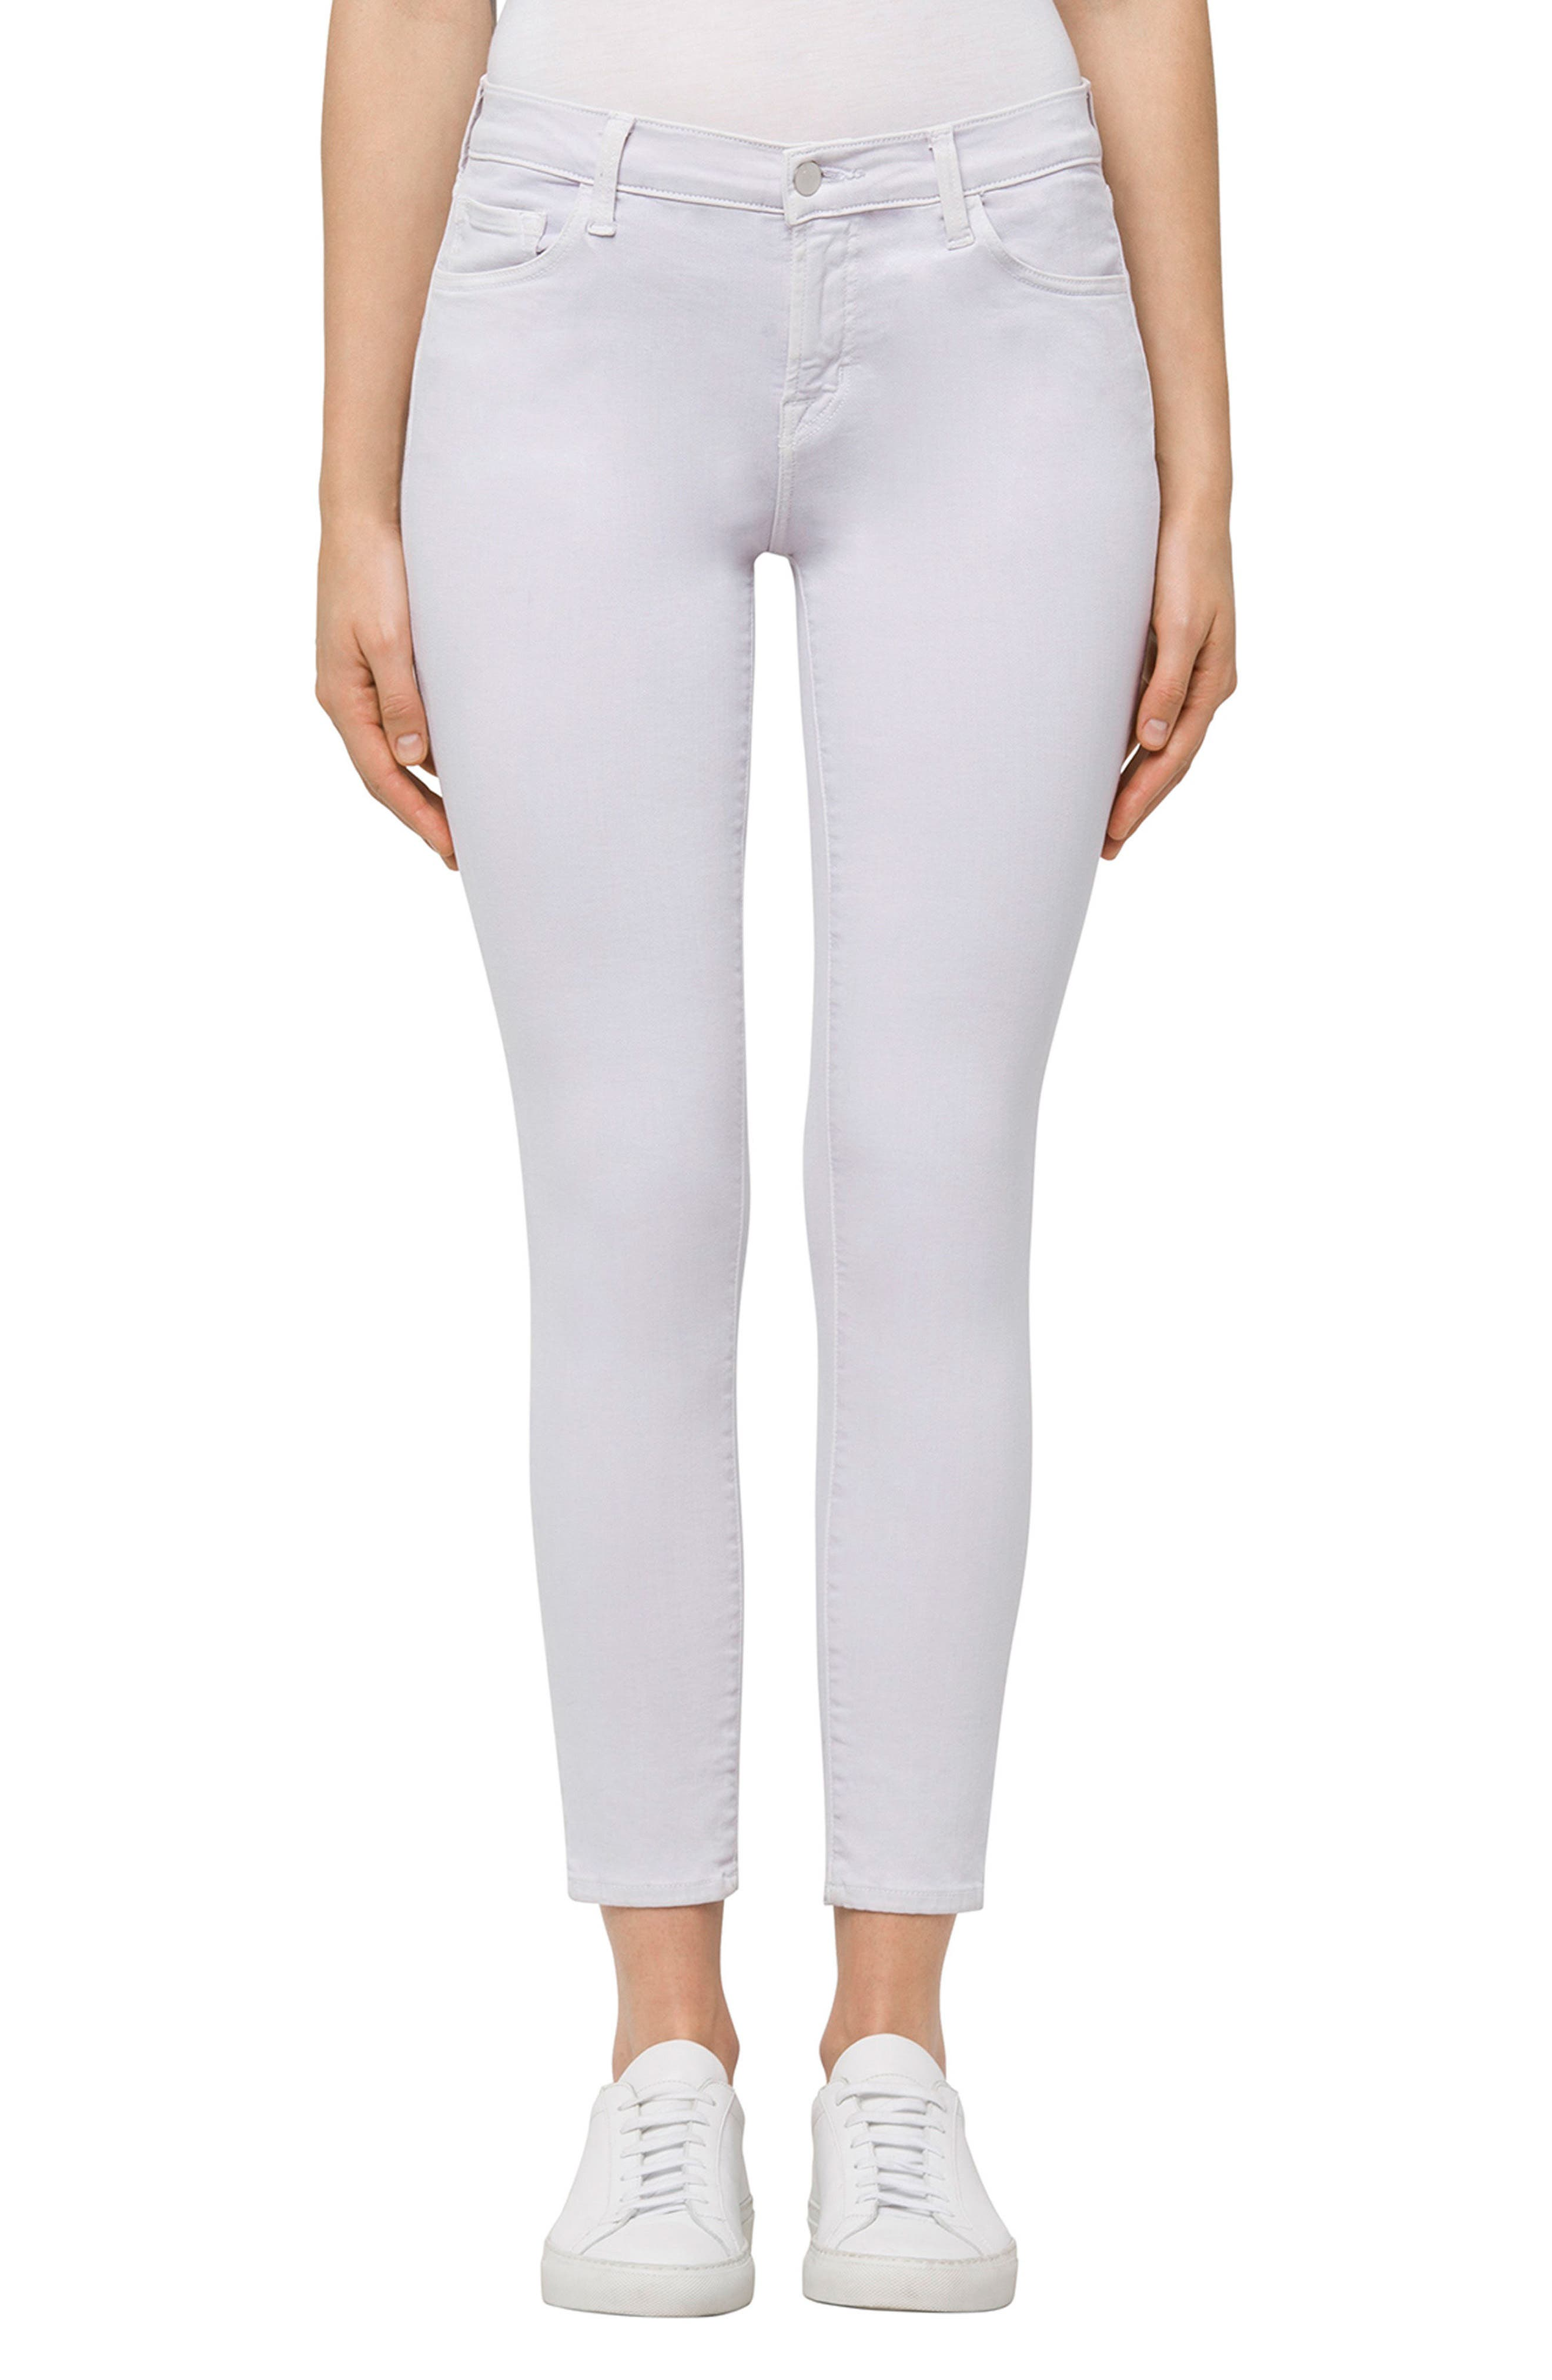 835 Capri Skinny Jeans,                         Main,                         color, Frosted Amethyst